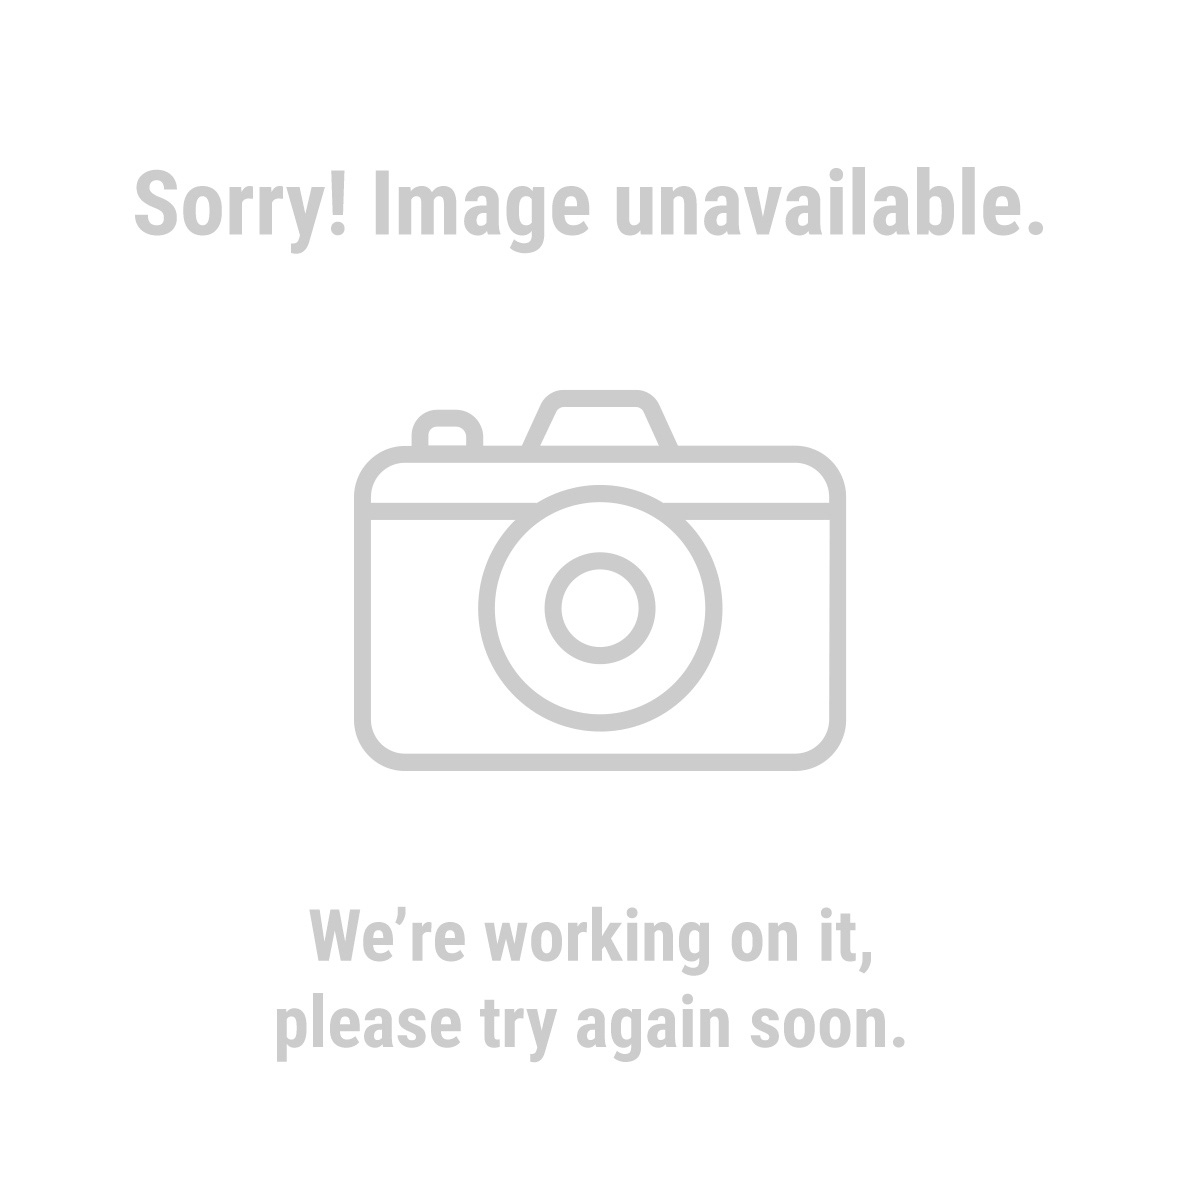 "Chicago Electric Power Tools 47569 4-1/2"" Grinding and Cut-off Wheel Assortment for Metal and Masonry - Pack of 10"